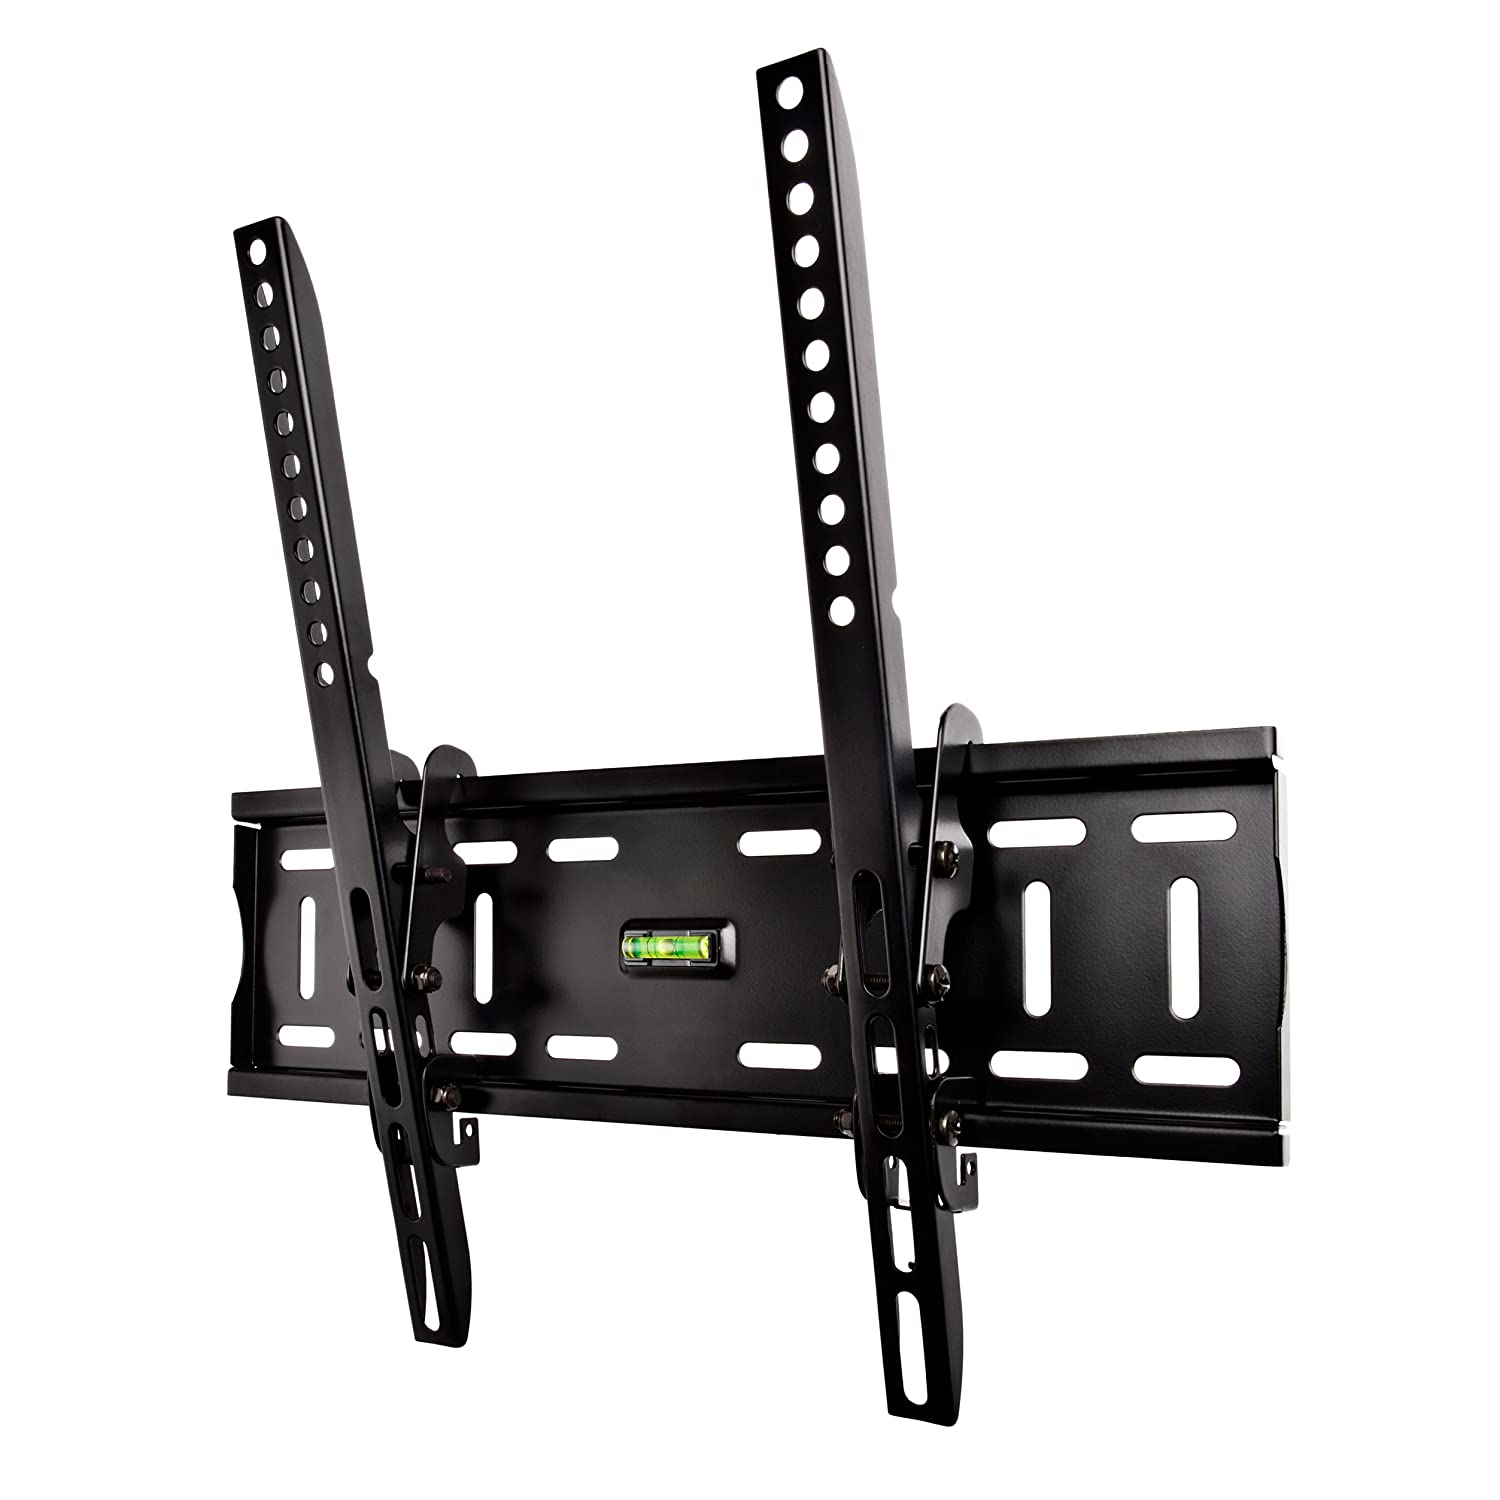 yousave accessories slim compact tv wall mount bracket for 26u201d to 55u201d led